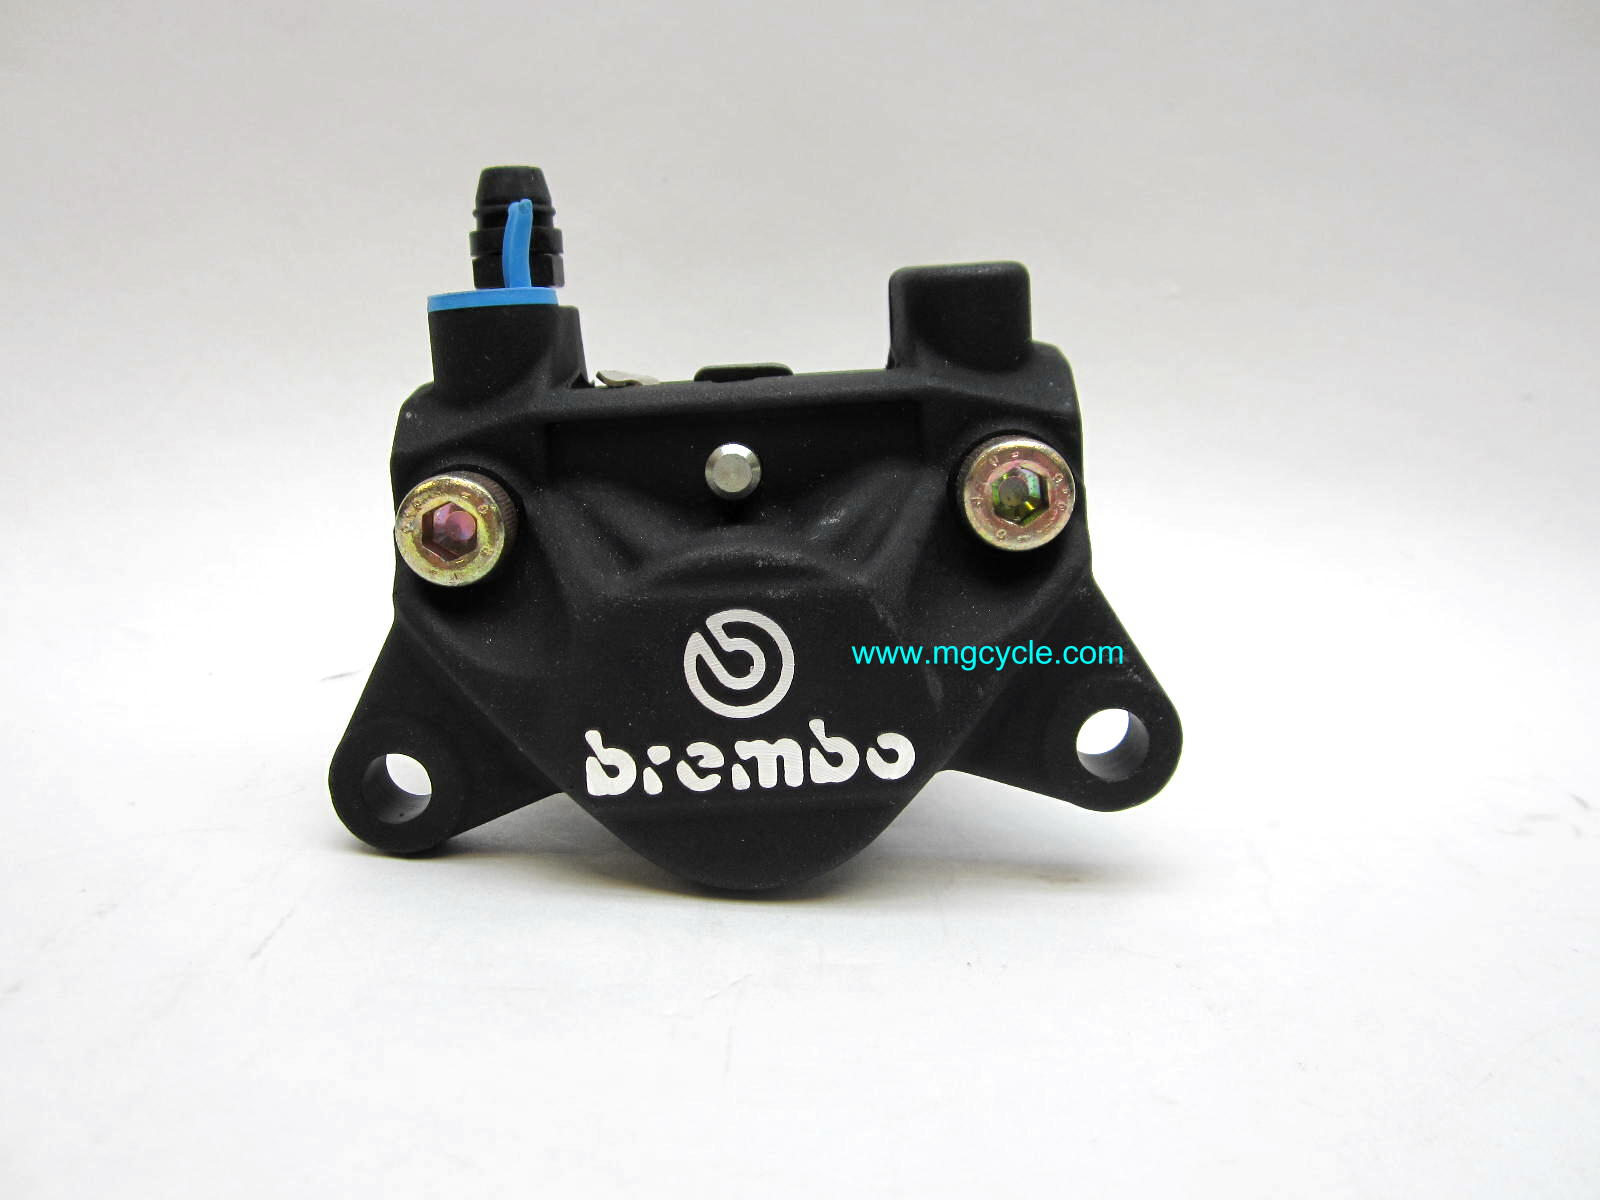 Brembo rear caliper for small twins series V35s V50s V65s V75s